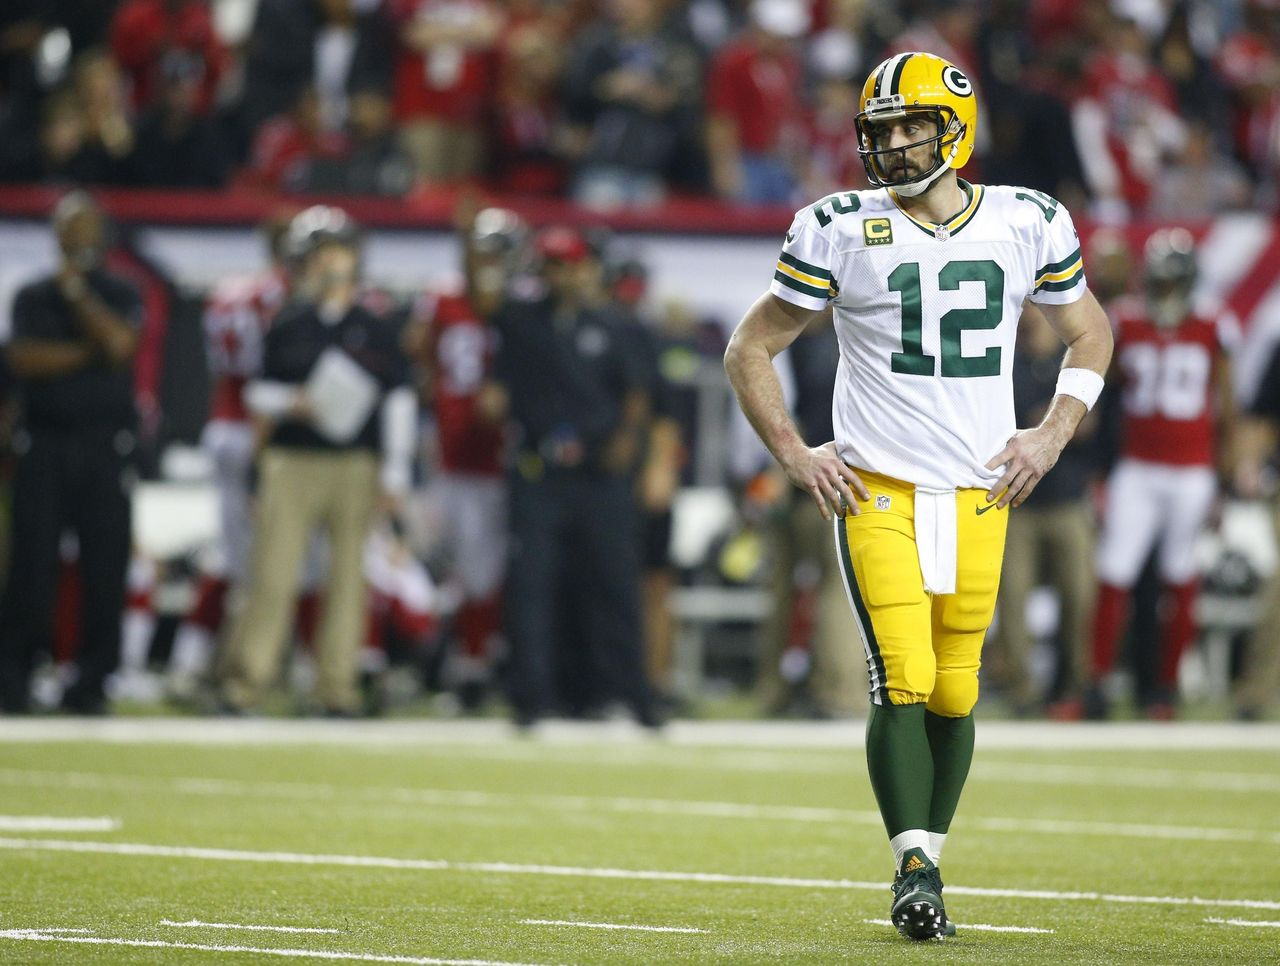 Cropped 2017 01 22t232314z 932892616 nocid rtrmadp 3 nfl nfc championship green bay packers at atlanta falcons